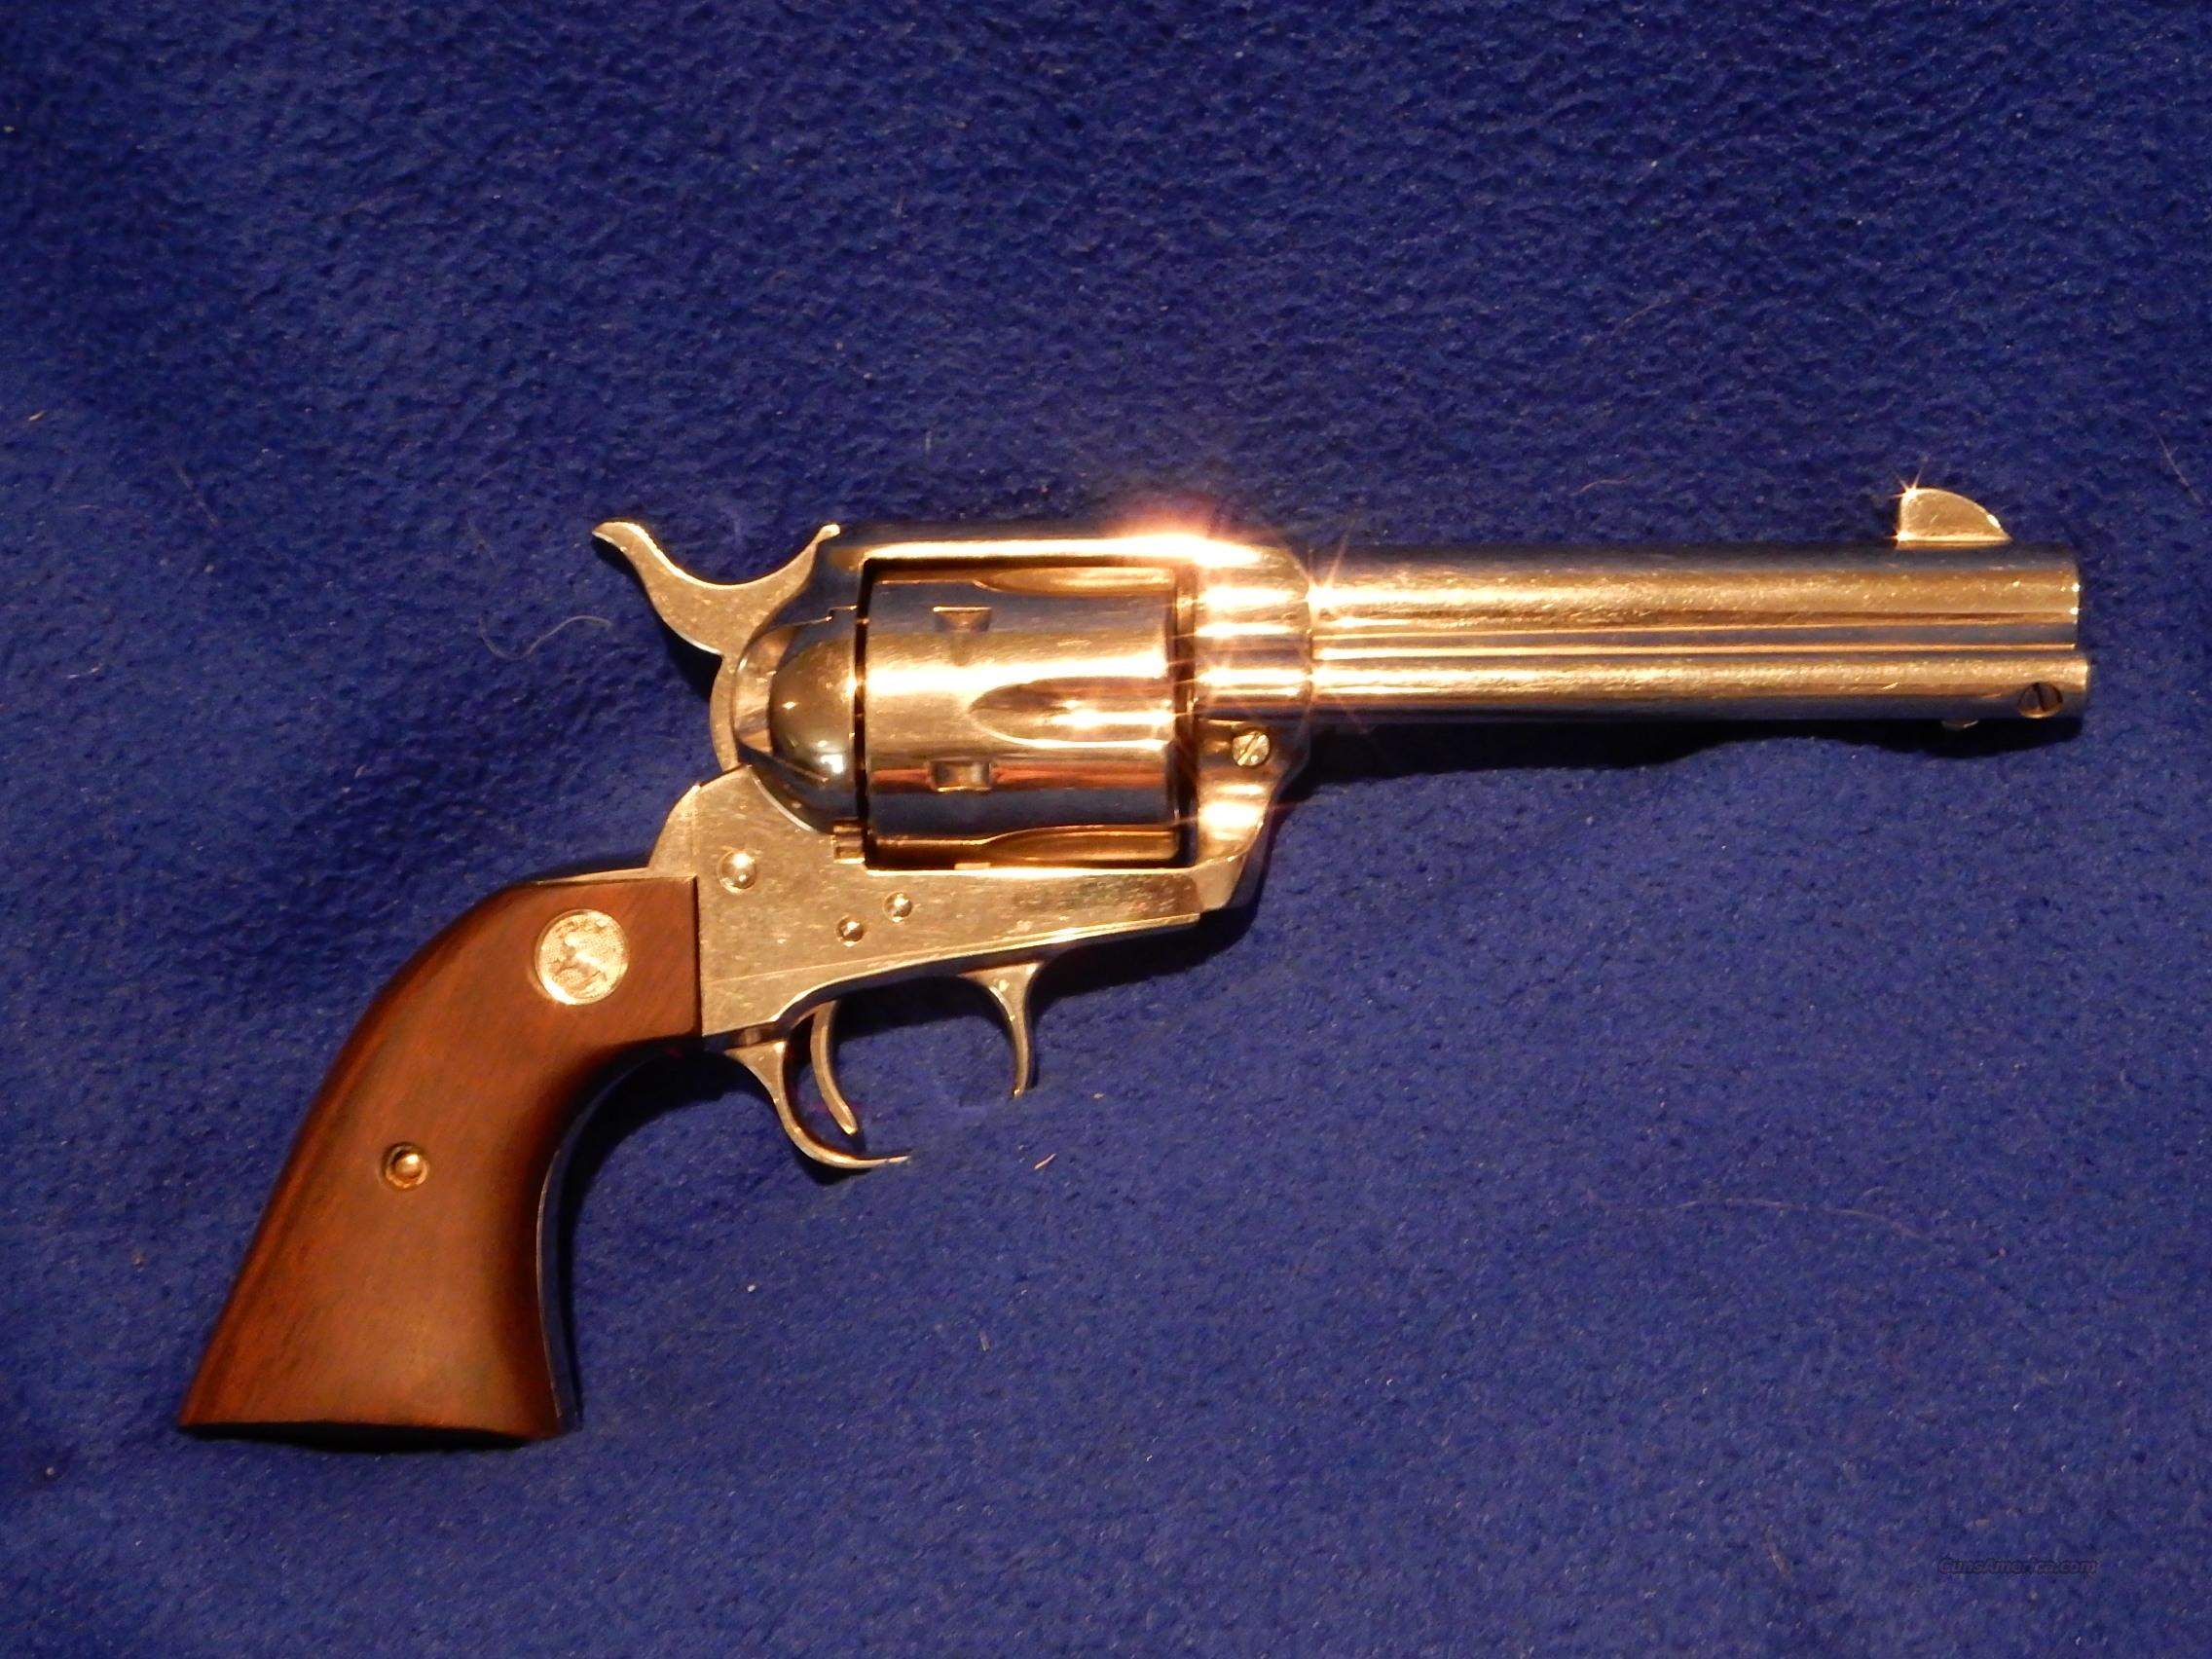 Cot SAA 44-40 4 3/4 Inch Nickel  Guns > Pistols > Colt Single Action Revolvers - 3rd Gen.